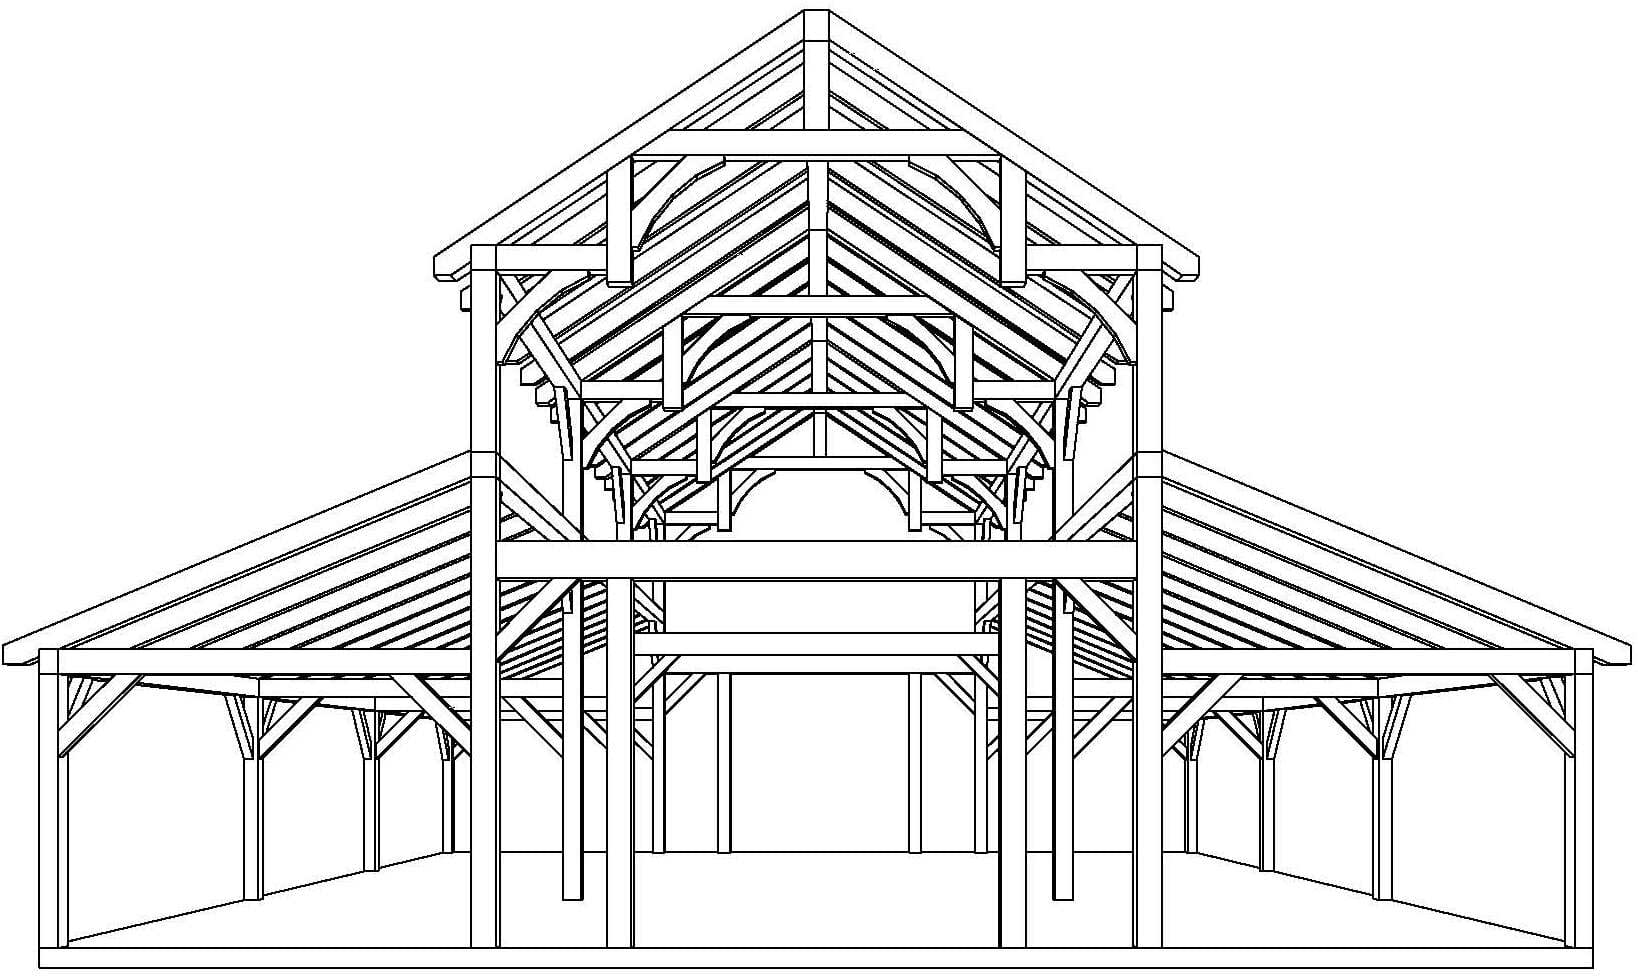 Equipment barn in tx with hemlock frame and curved braces for Plans for a barn